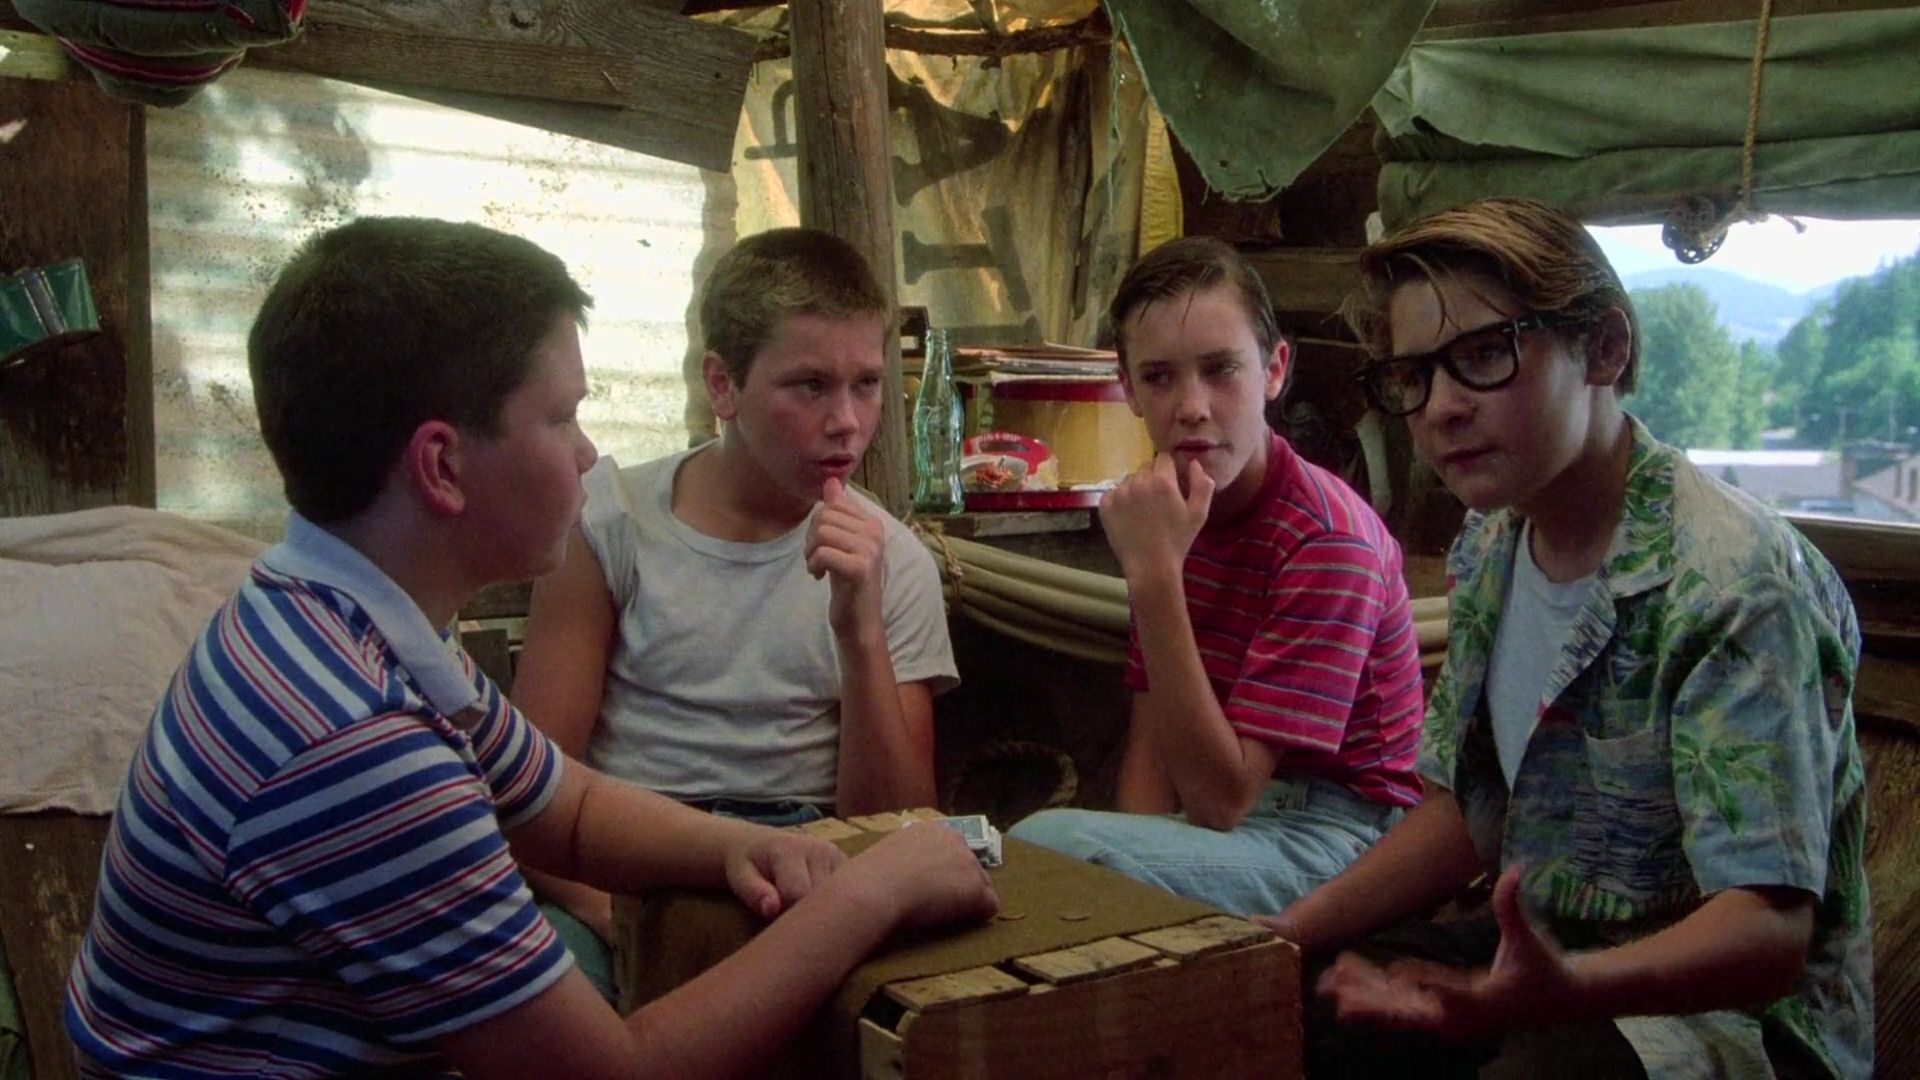 From Left to Right: Jerry O'Connell as Vern, River Phoenix as Chris, Wil Wheaton as Gordie, Corey Feldman as Teddy in Stand By Me